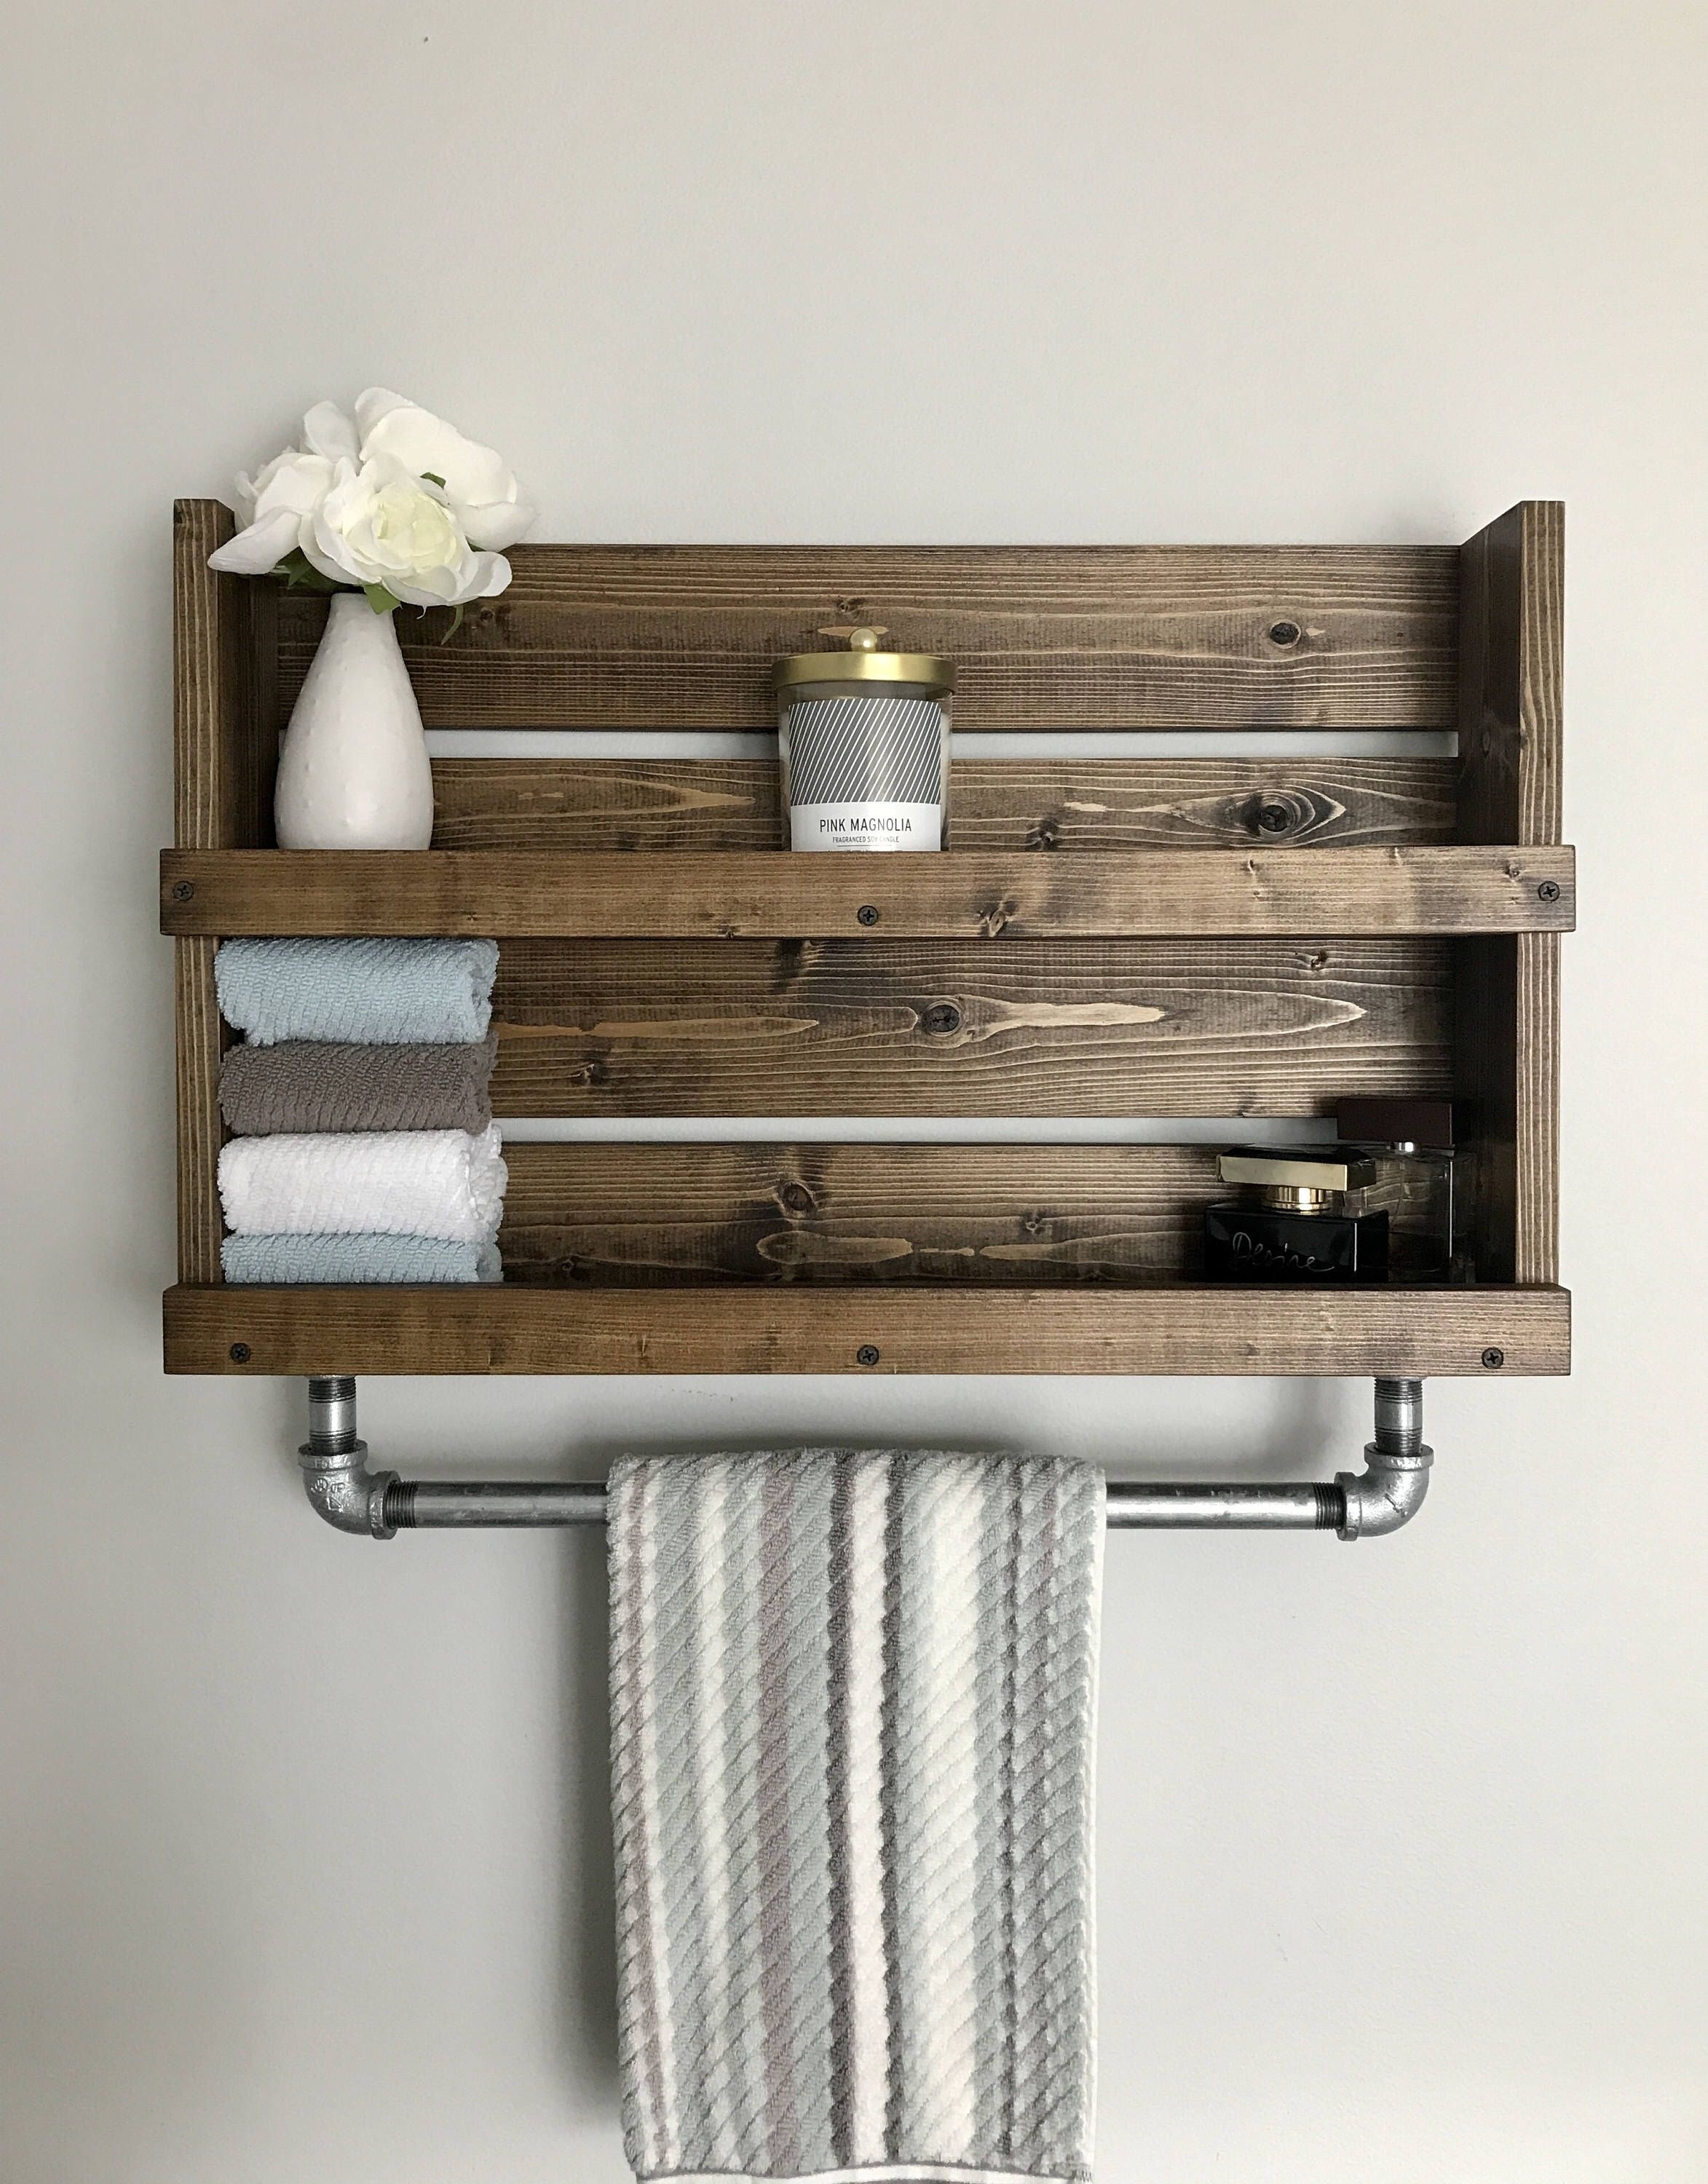 Pin On Bathroom Shelf Ideas